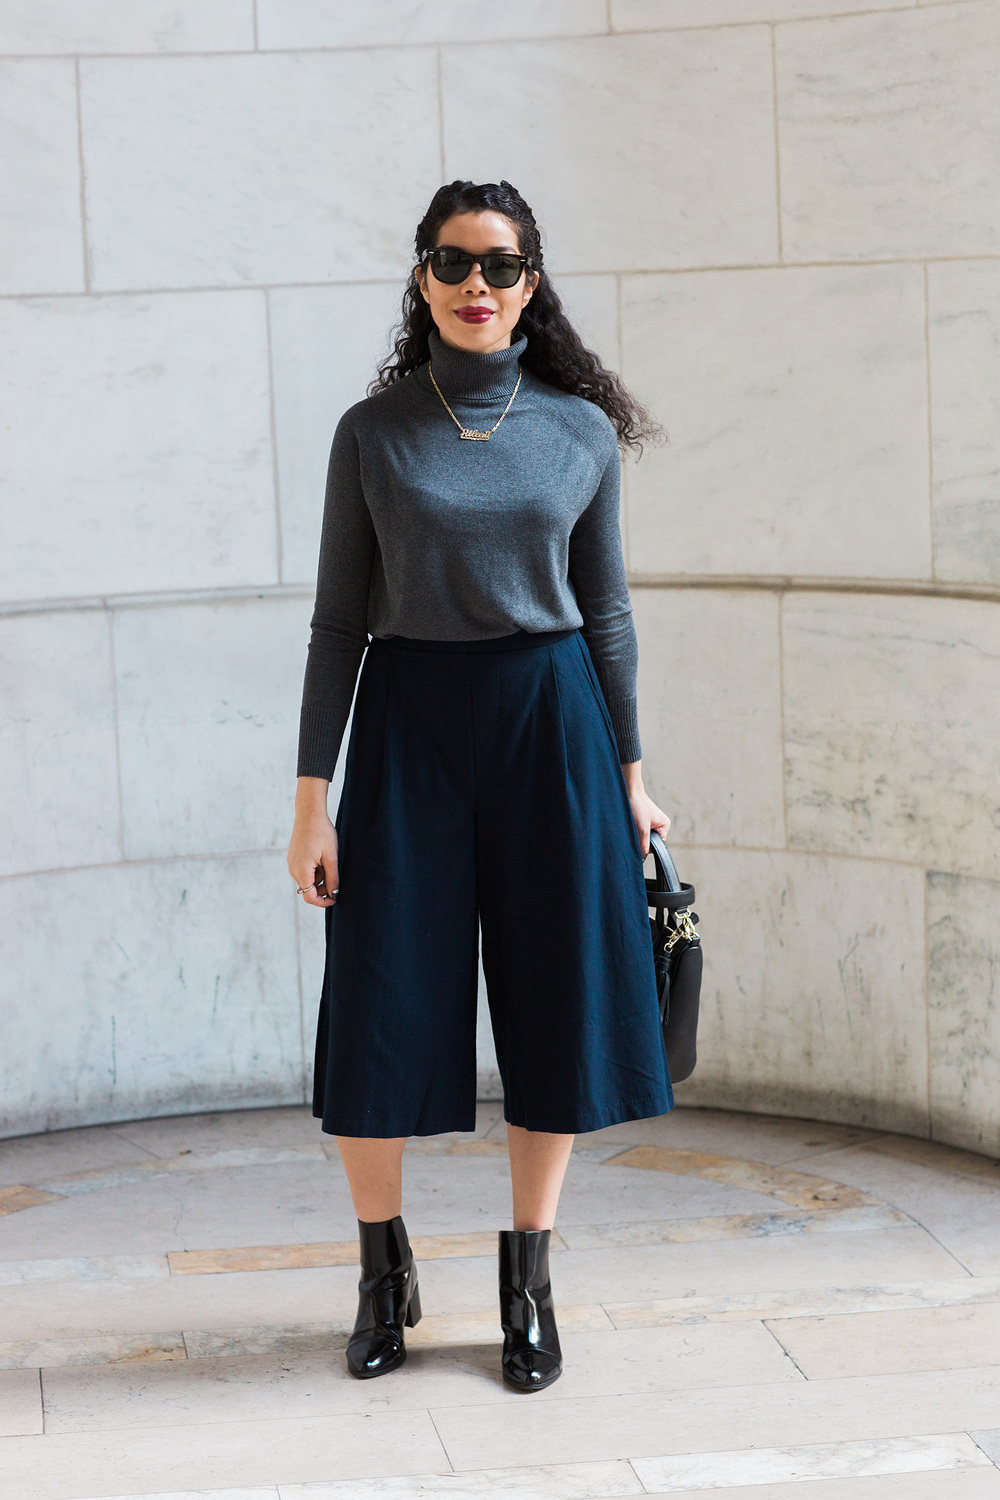 old_navy_culottes_outfit_ideas.jpg